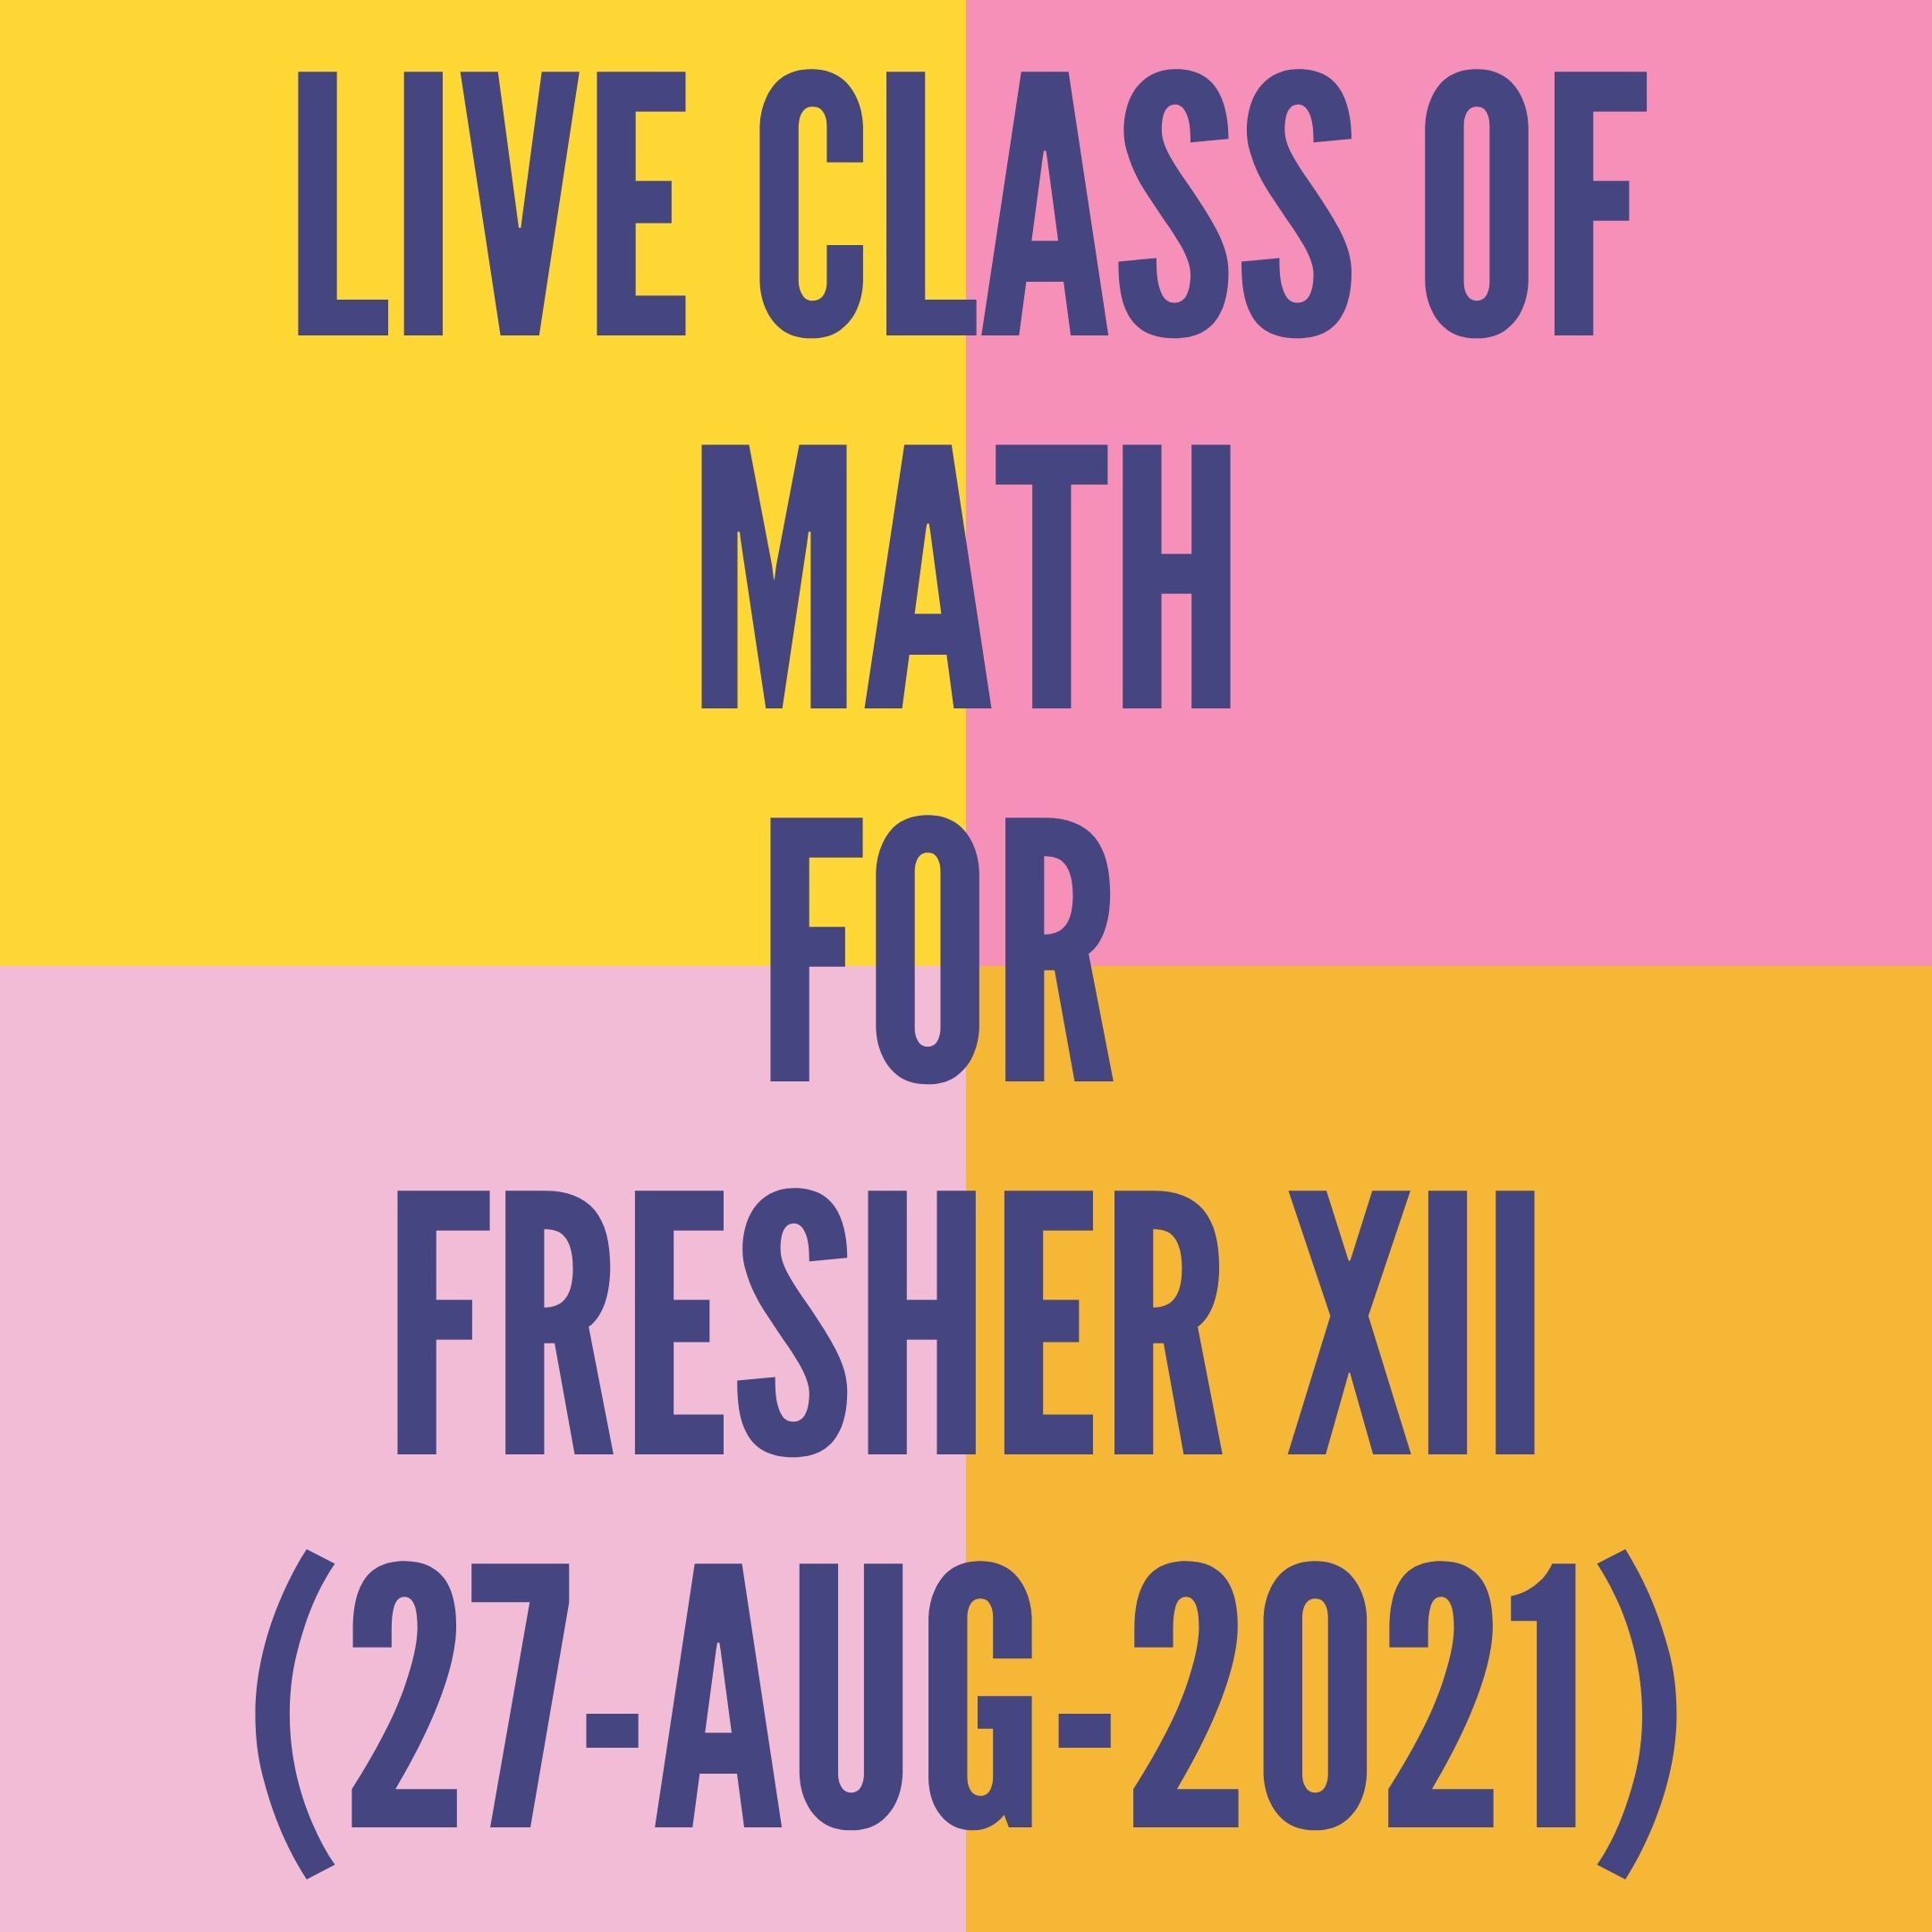 LIVE CLASS OF MATH FOR FRESHER (27-AUG-2021)